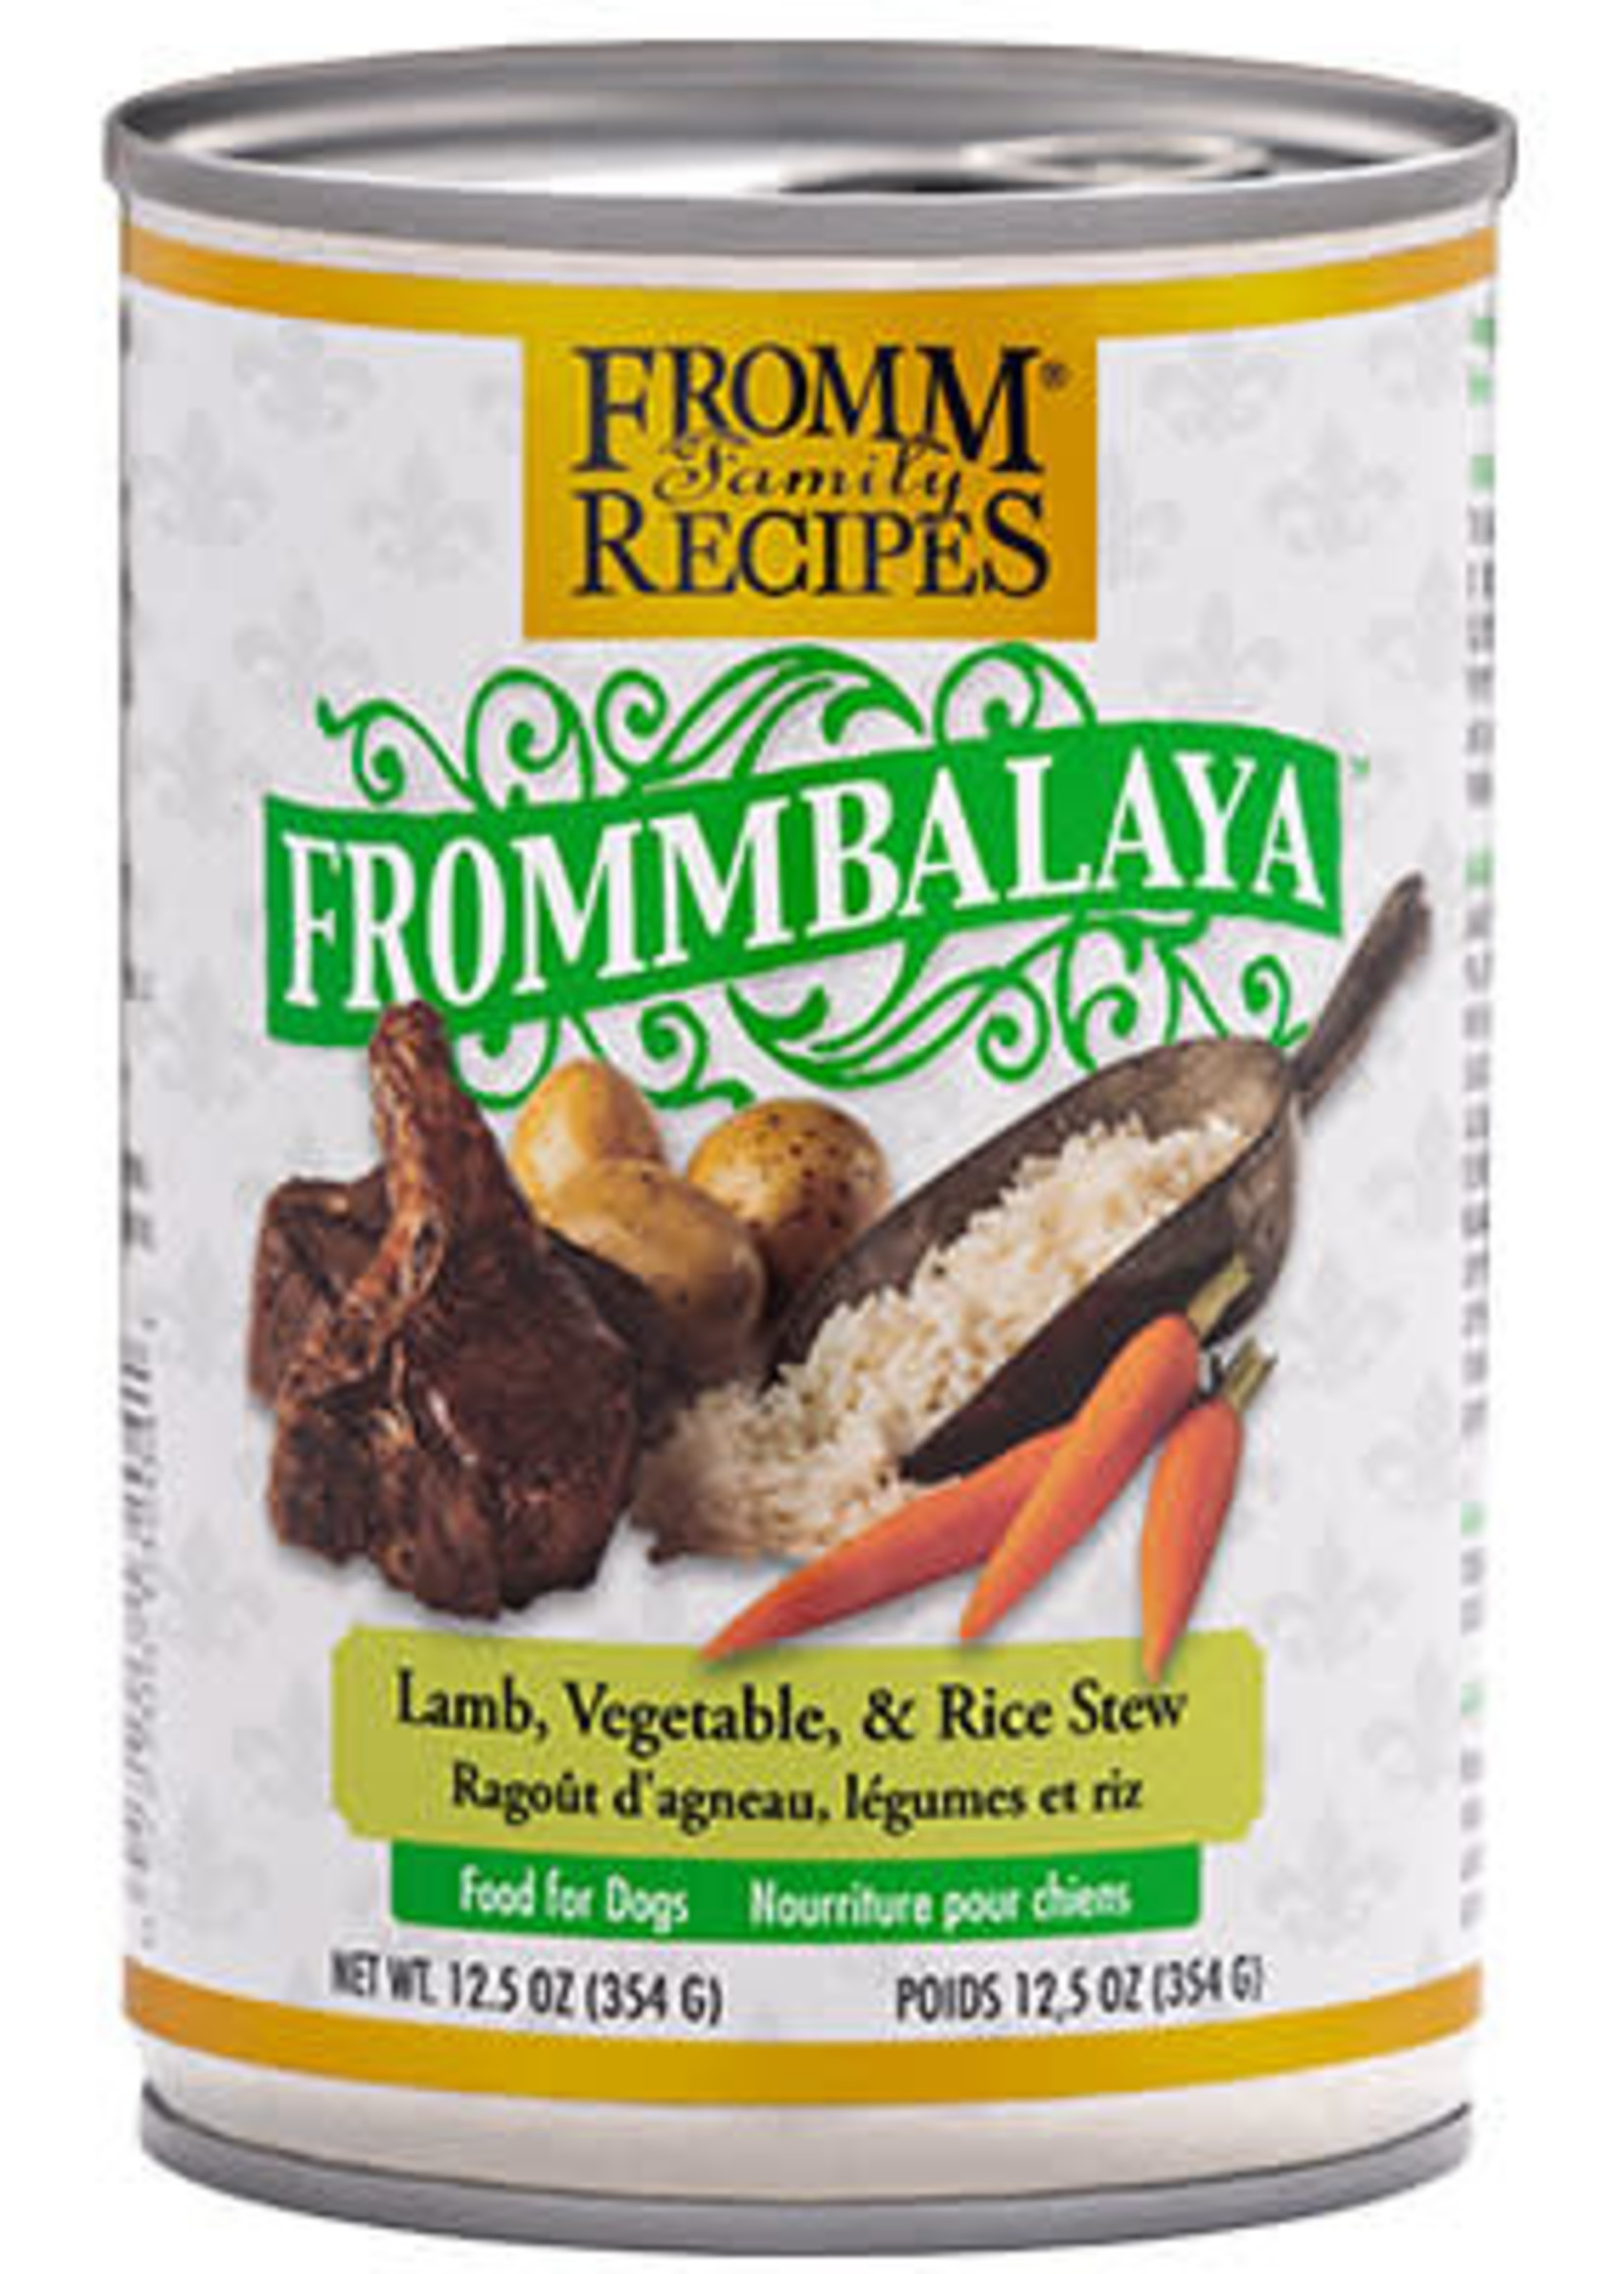 Fromm® FrommBALAYA Lamb, Vegetable, & Rice Stew 12.5oz